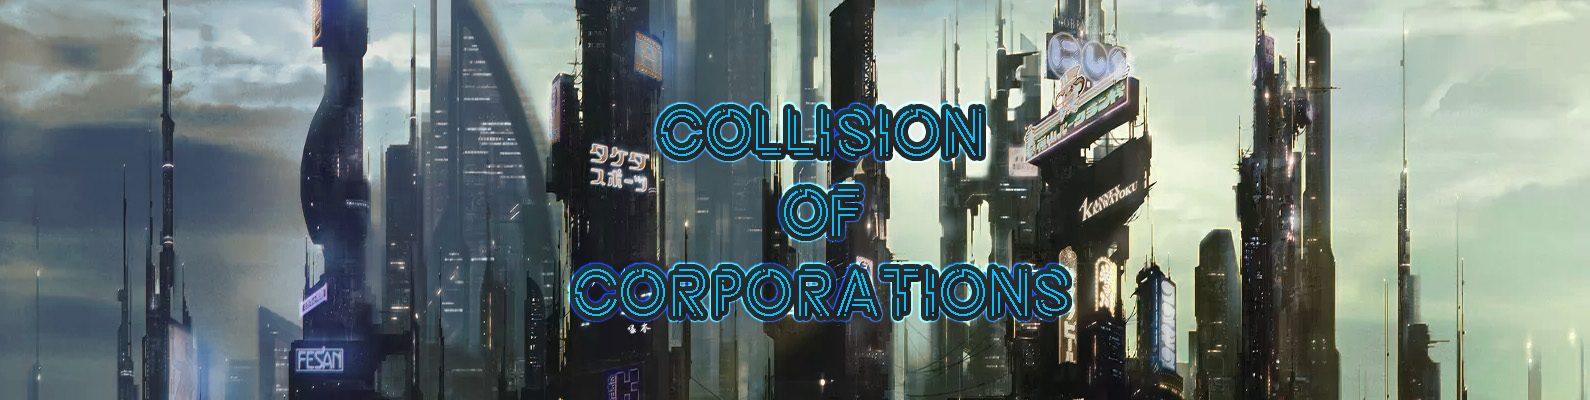 Название | Collision of corporations набор команды (RTS)